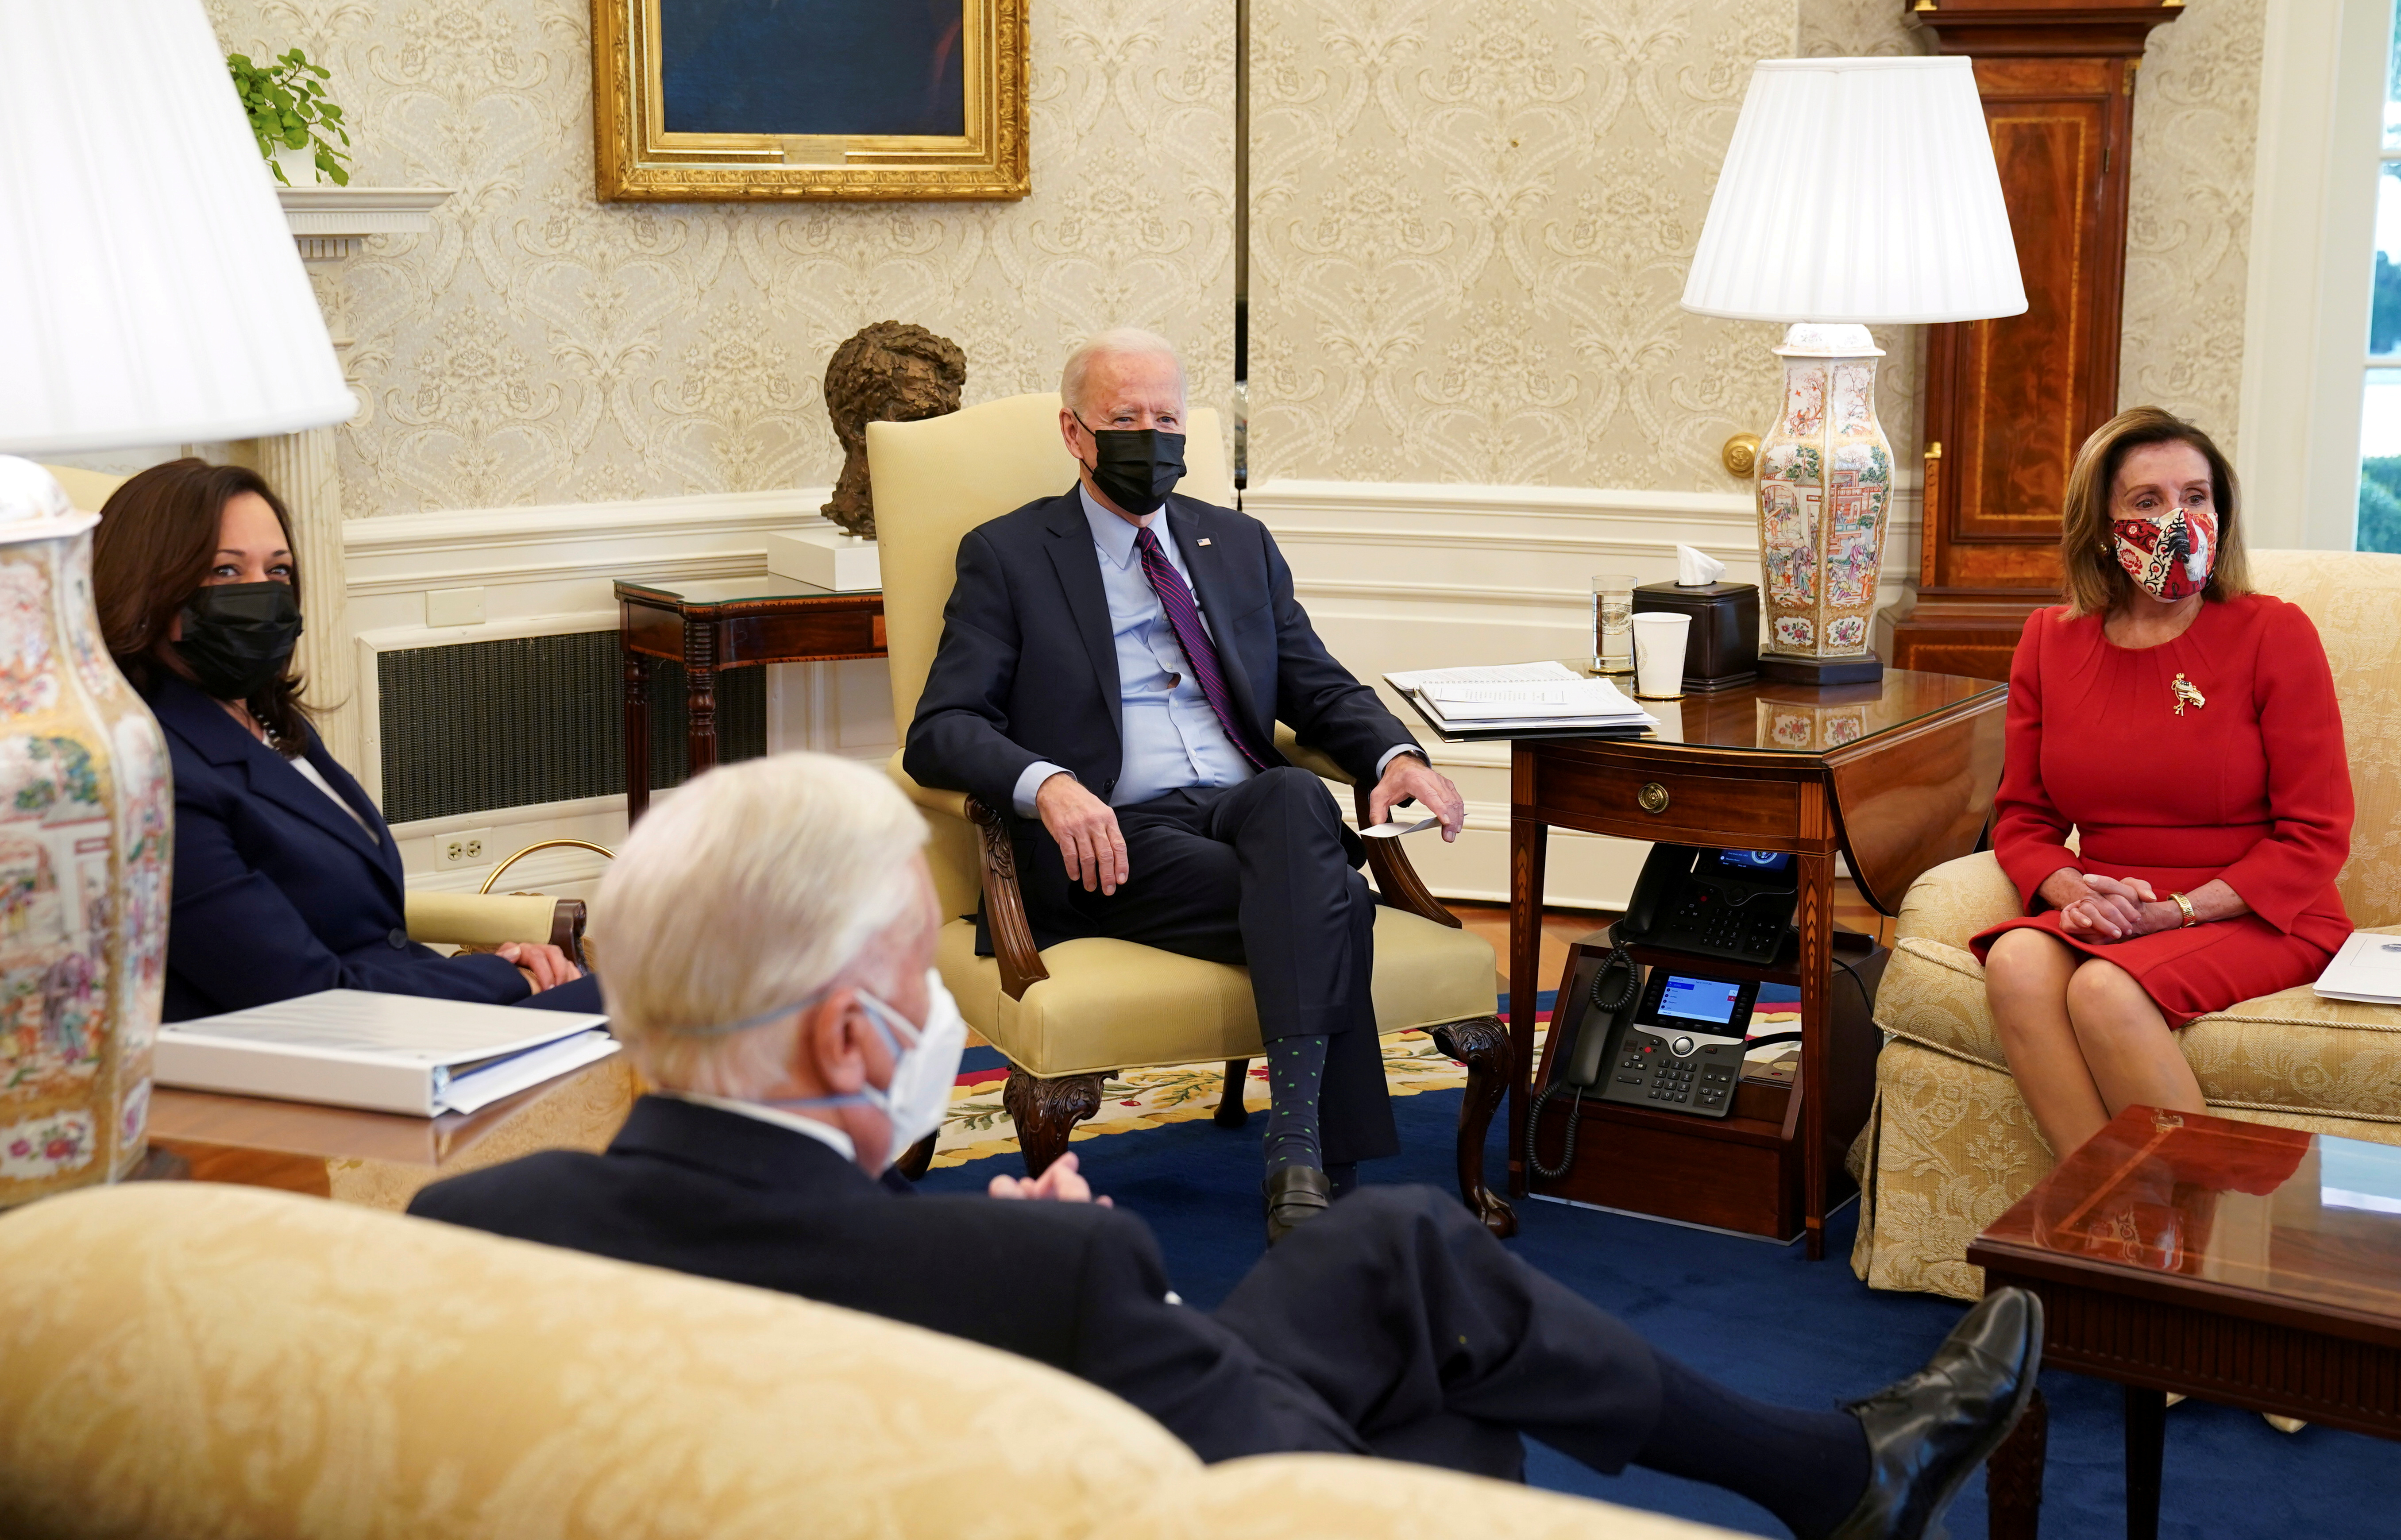 U.S. President Joe Biden, flanked by Vice President Kamala Harris and Speaker of the House Nancy Pelosi (D-CA), holds a meetinga meeting with House Democratic leaders and chairs of House committees working on coronavirus disease (COVID-19) aid legislation, in the Oval Office at the White House in Washington, U.S., February 5, 2021. REUTERS/Kevin Lamarque/File Photo